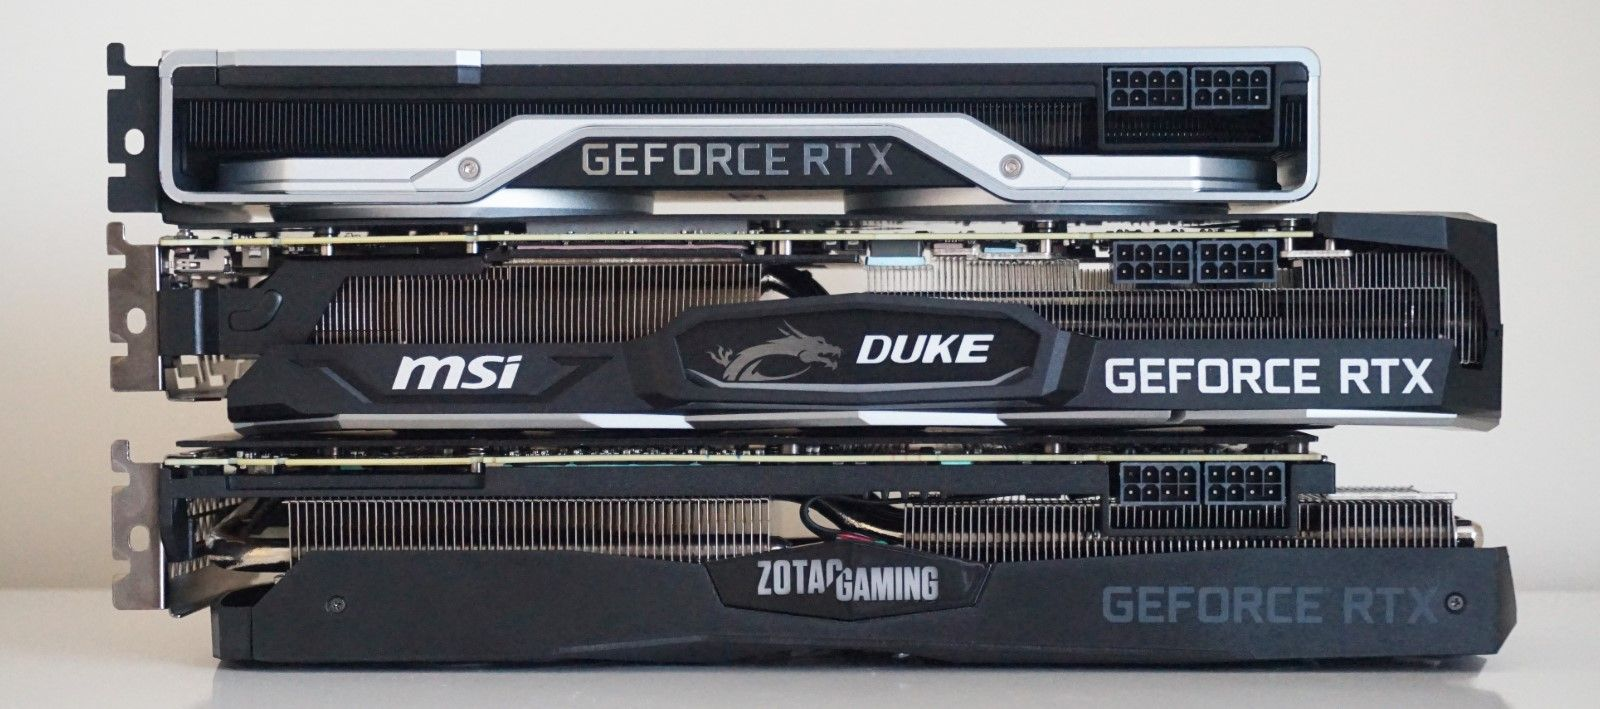 Three Graphics Cards on top of each other